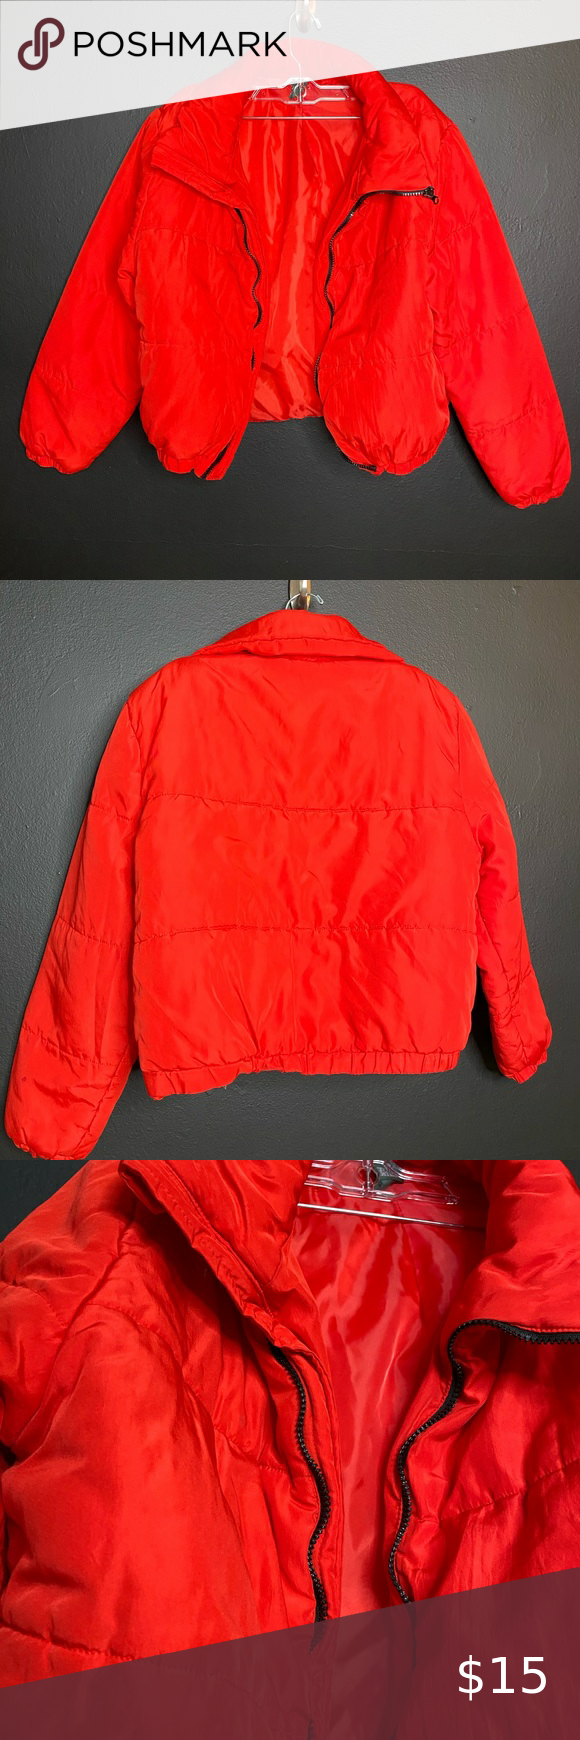 Wild Fable Women S Red Puffer Jacket Red Puffer Jacket Bright Jacket Clothes Design [ 1740 x 580 Pixel ]